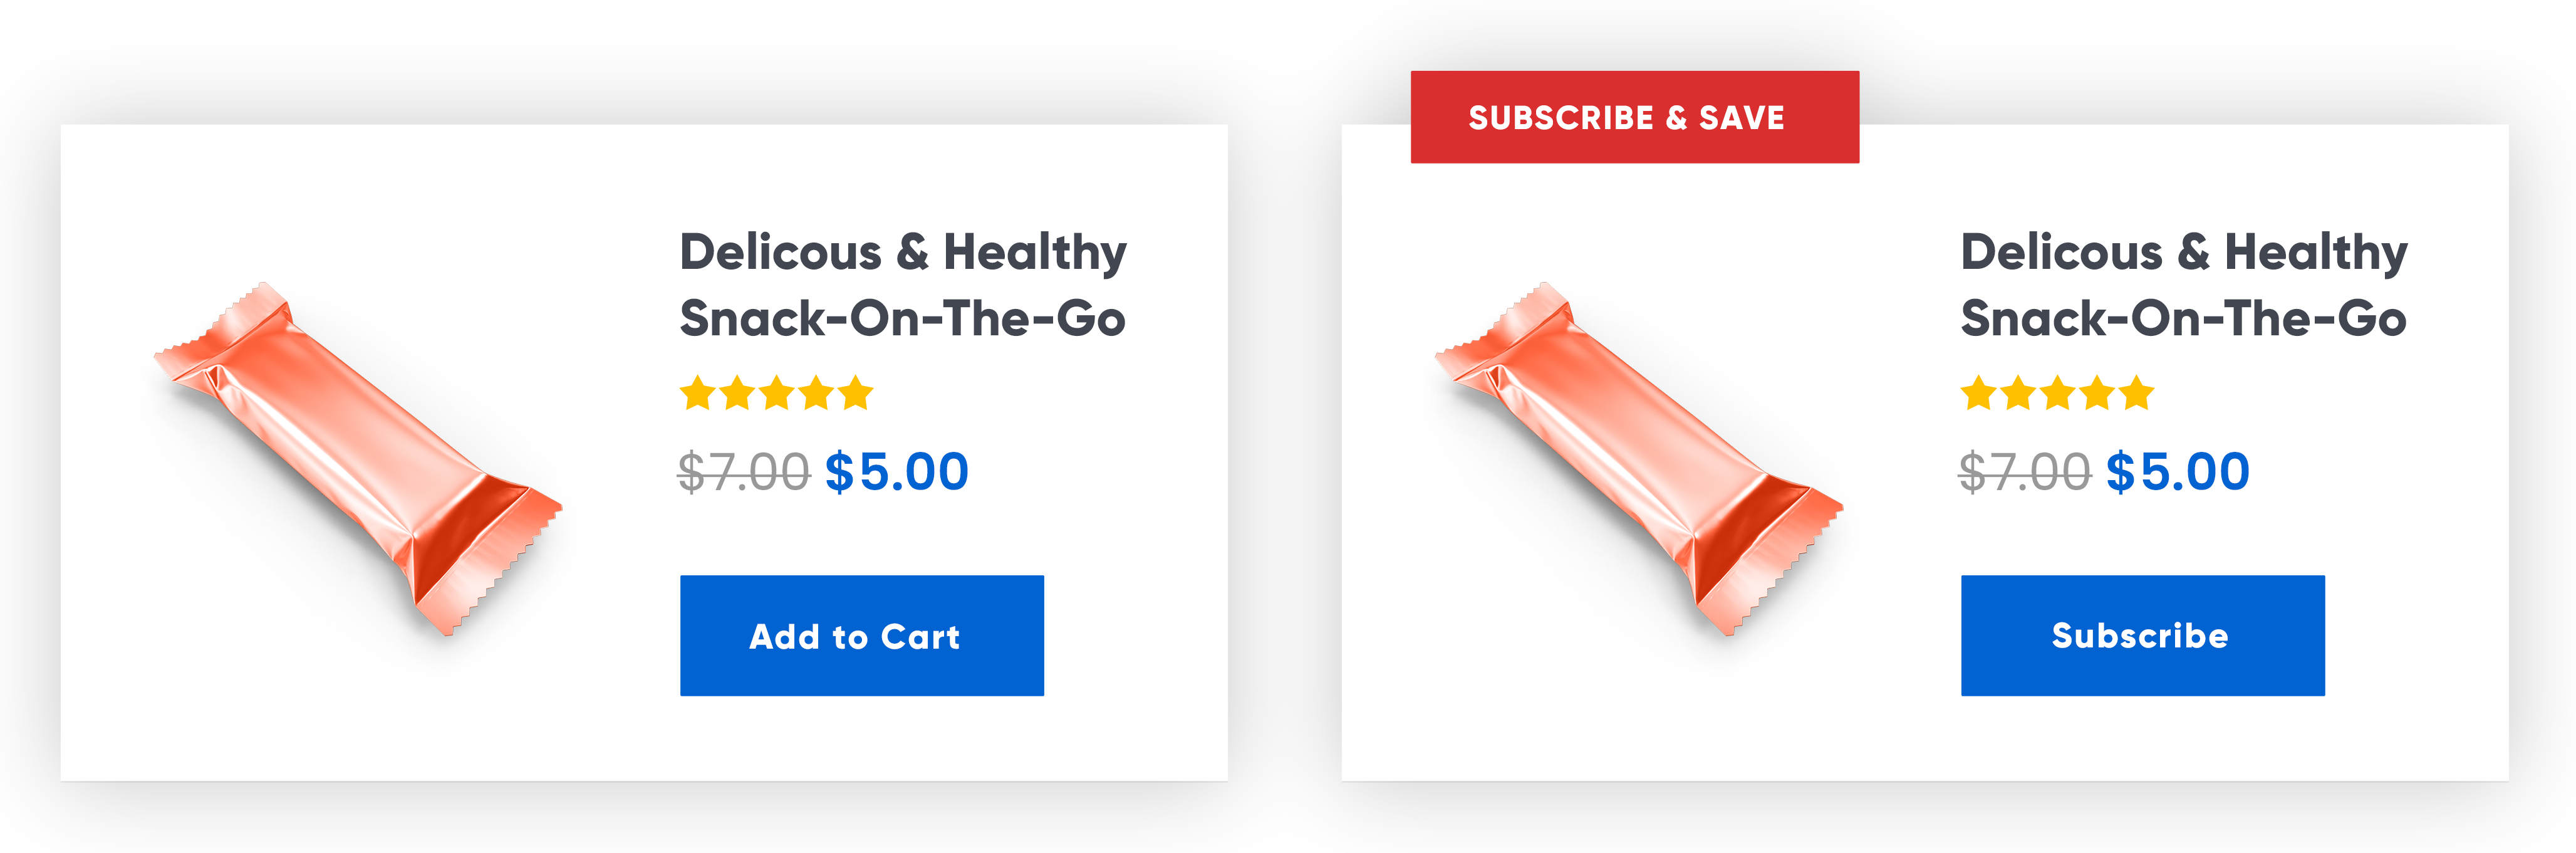 Subscriptions COVID-19 e-commerce strategy